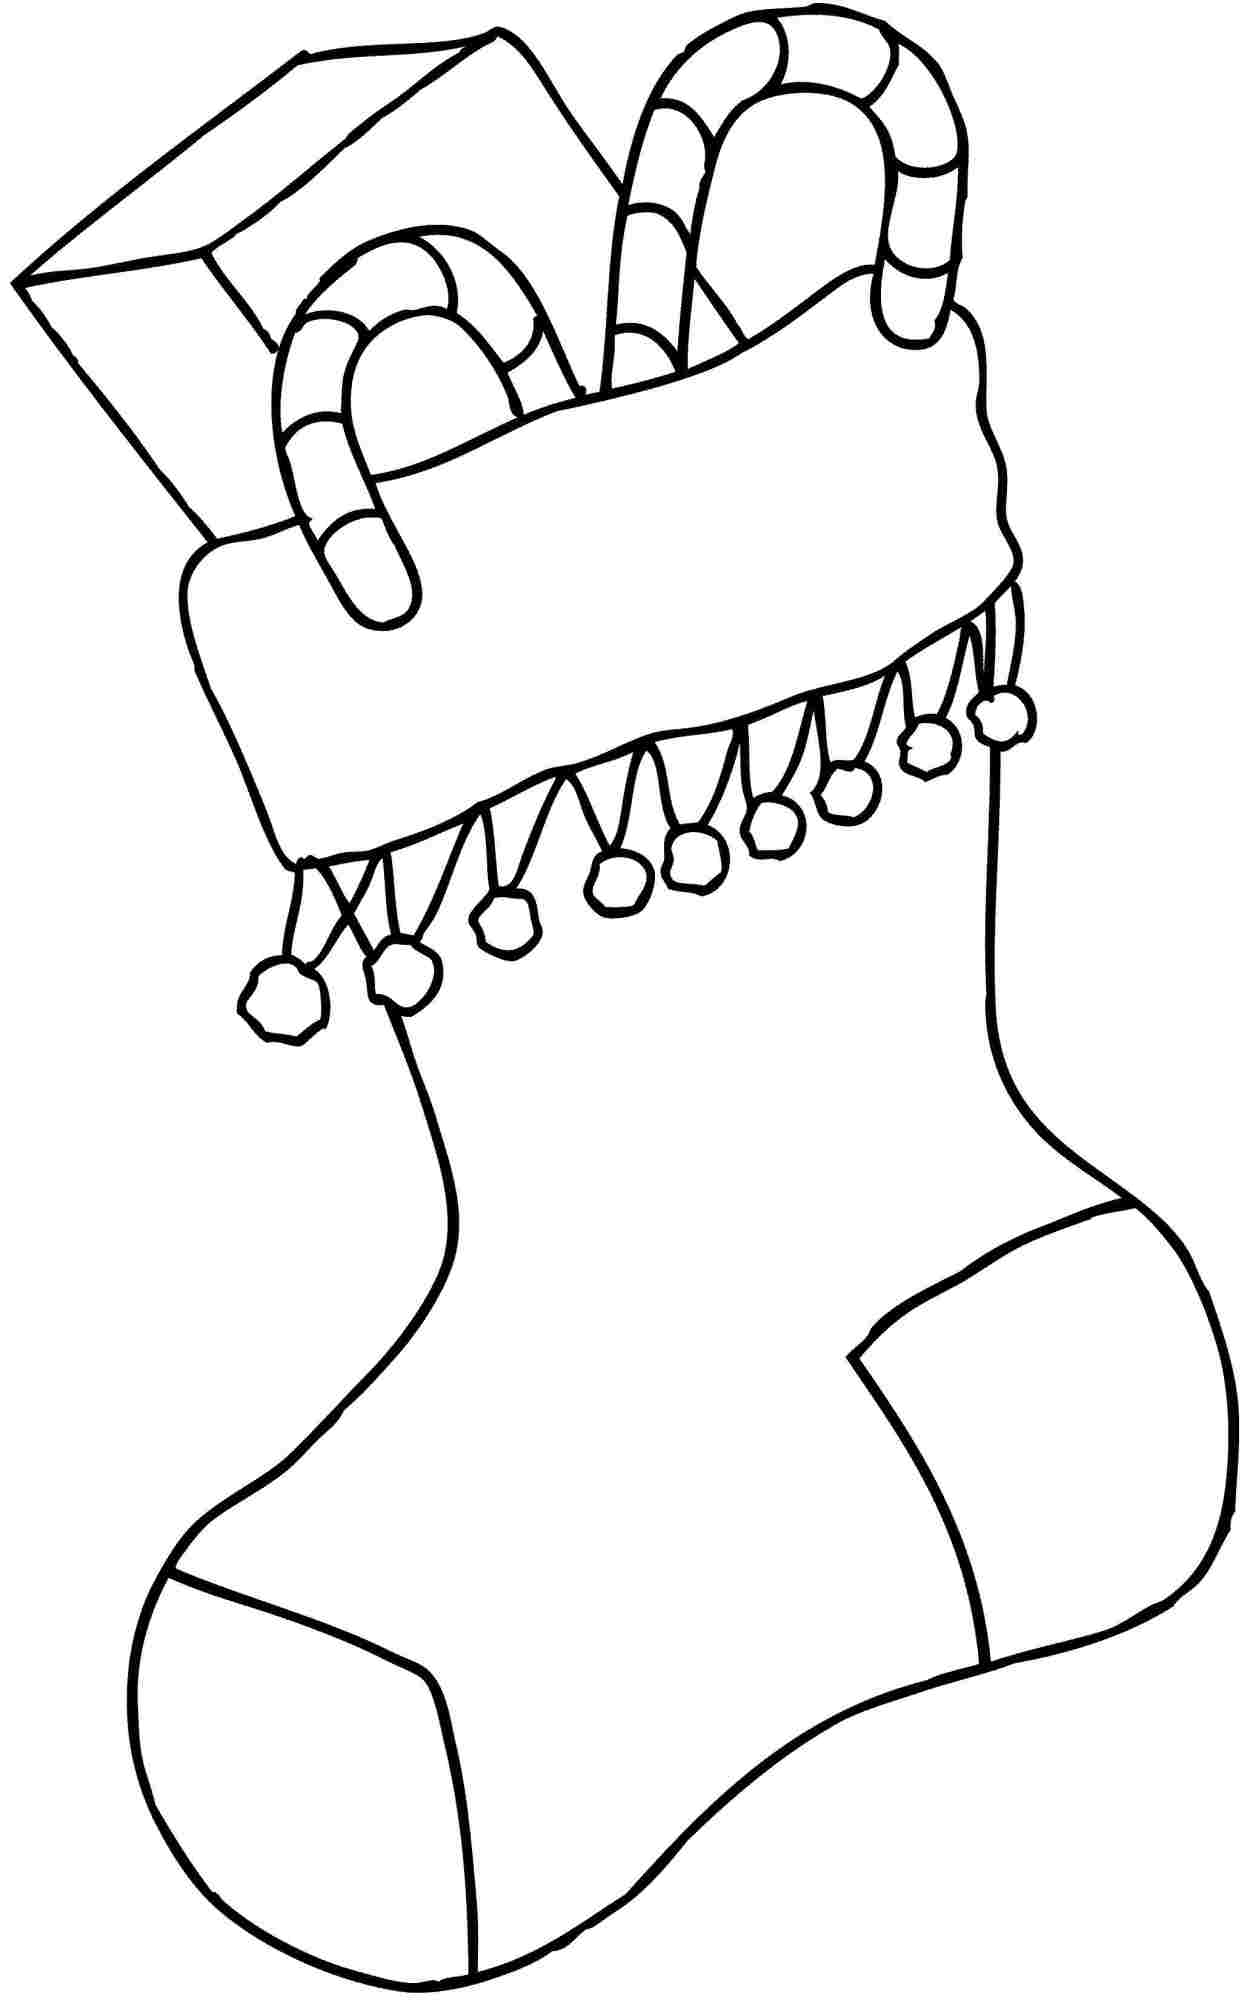 Christmas Stocking Coloring Best For Kids Socks Candy Canes